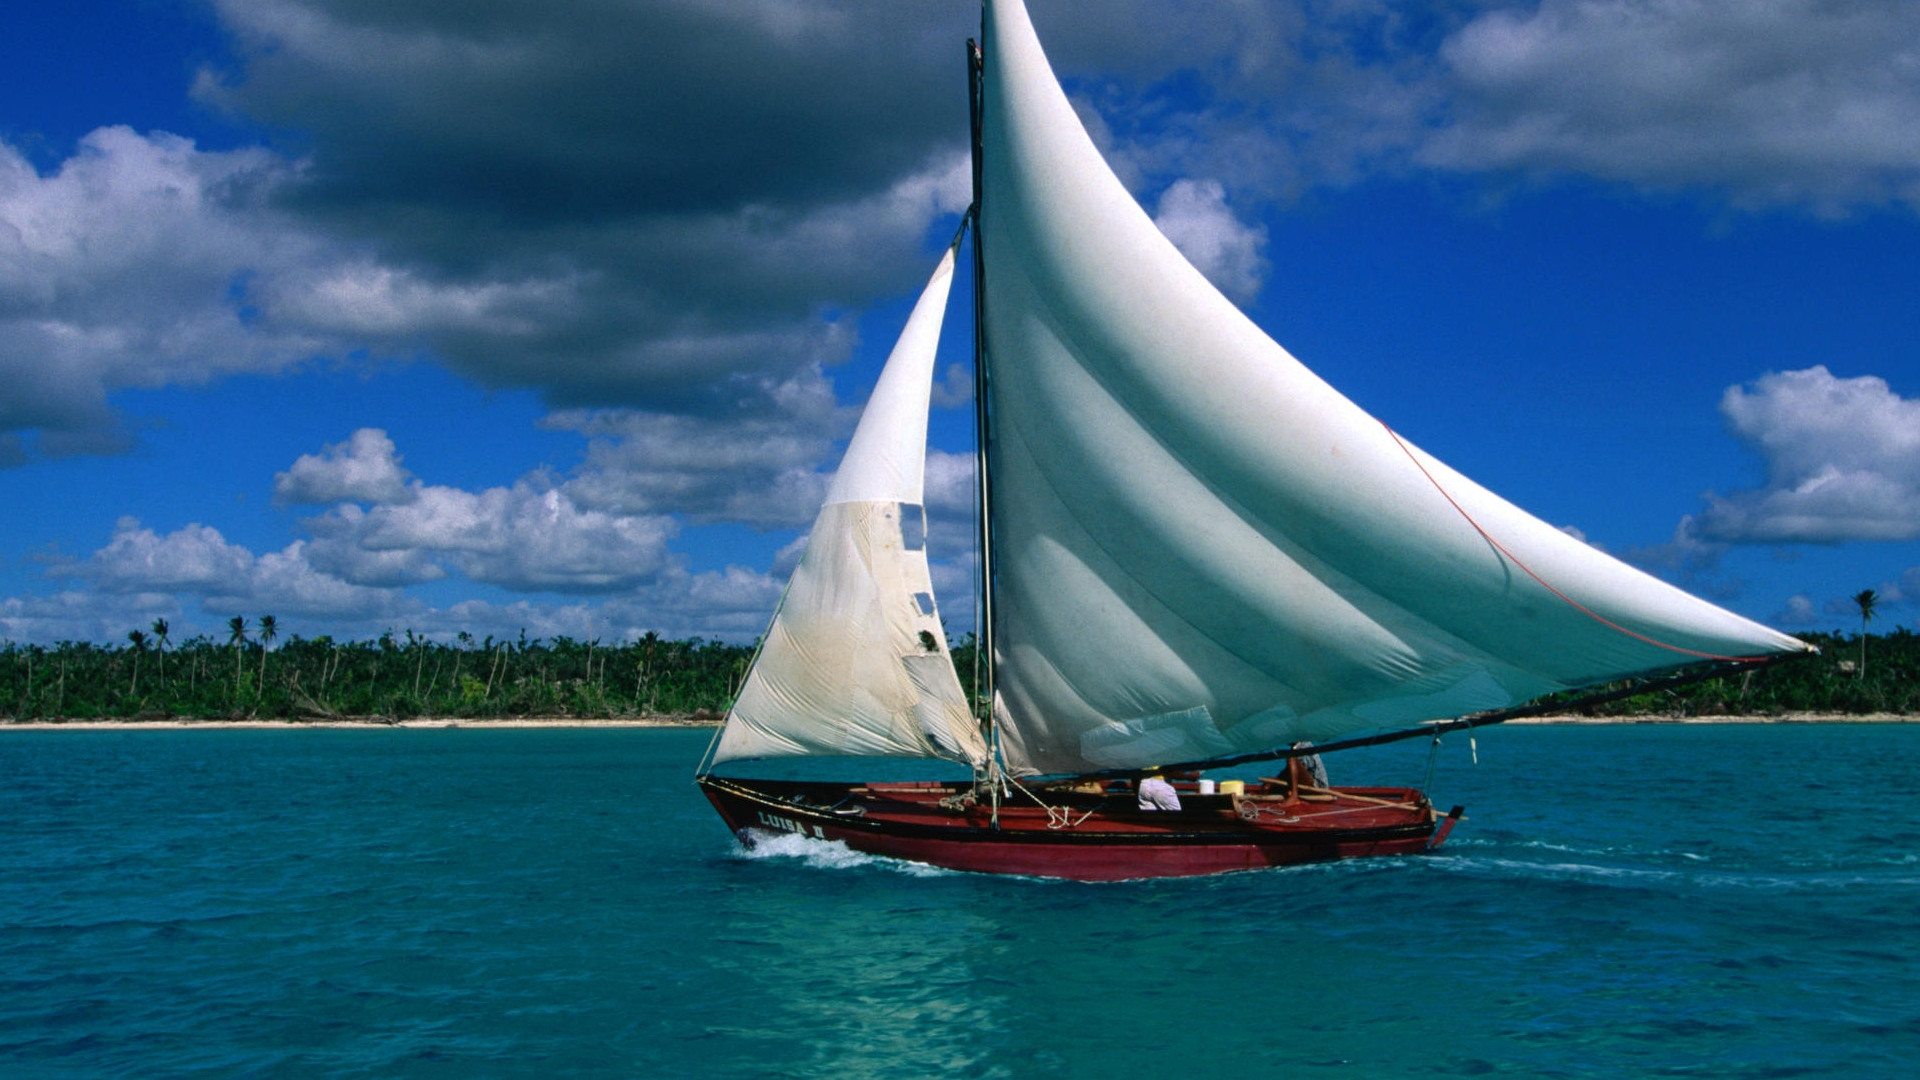 wallpaper sailing